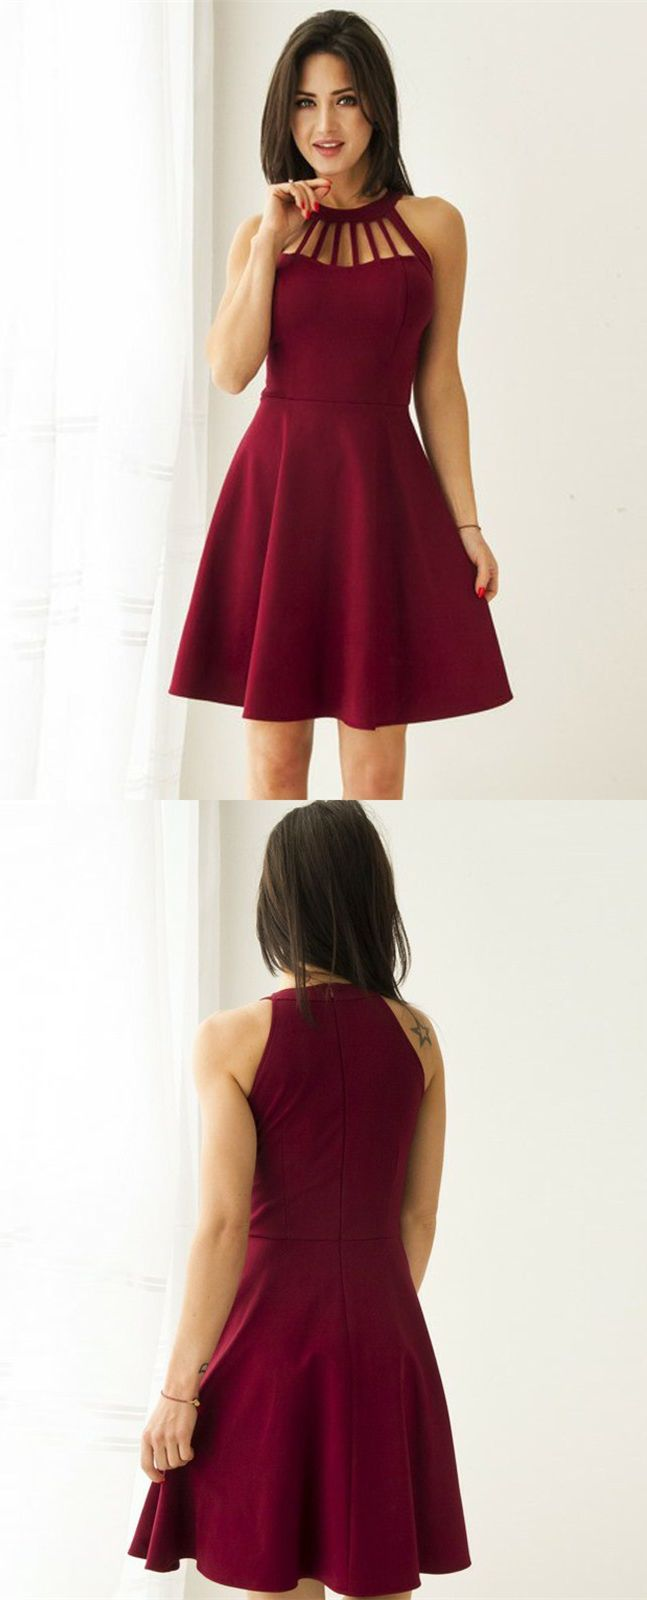 Burgundy short elegant party gowns, simple fall homecoming dresses, chic semi formal dresses.